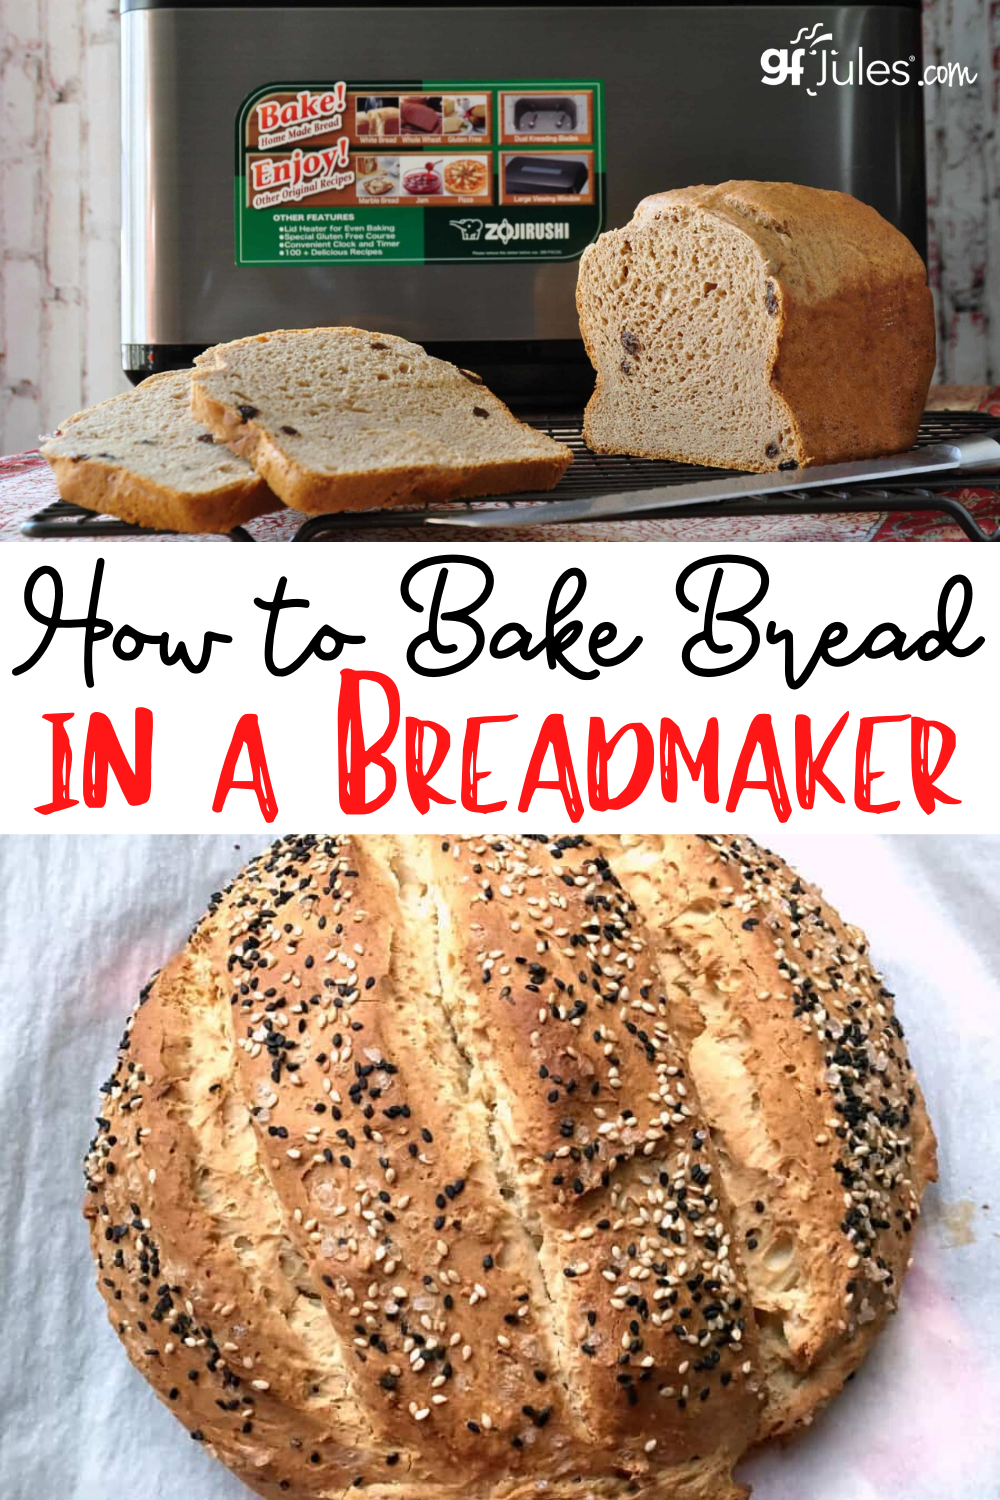 Baking Gluten Free Bread in a Breadmaker